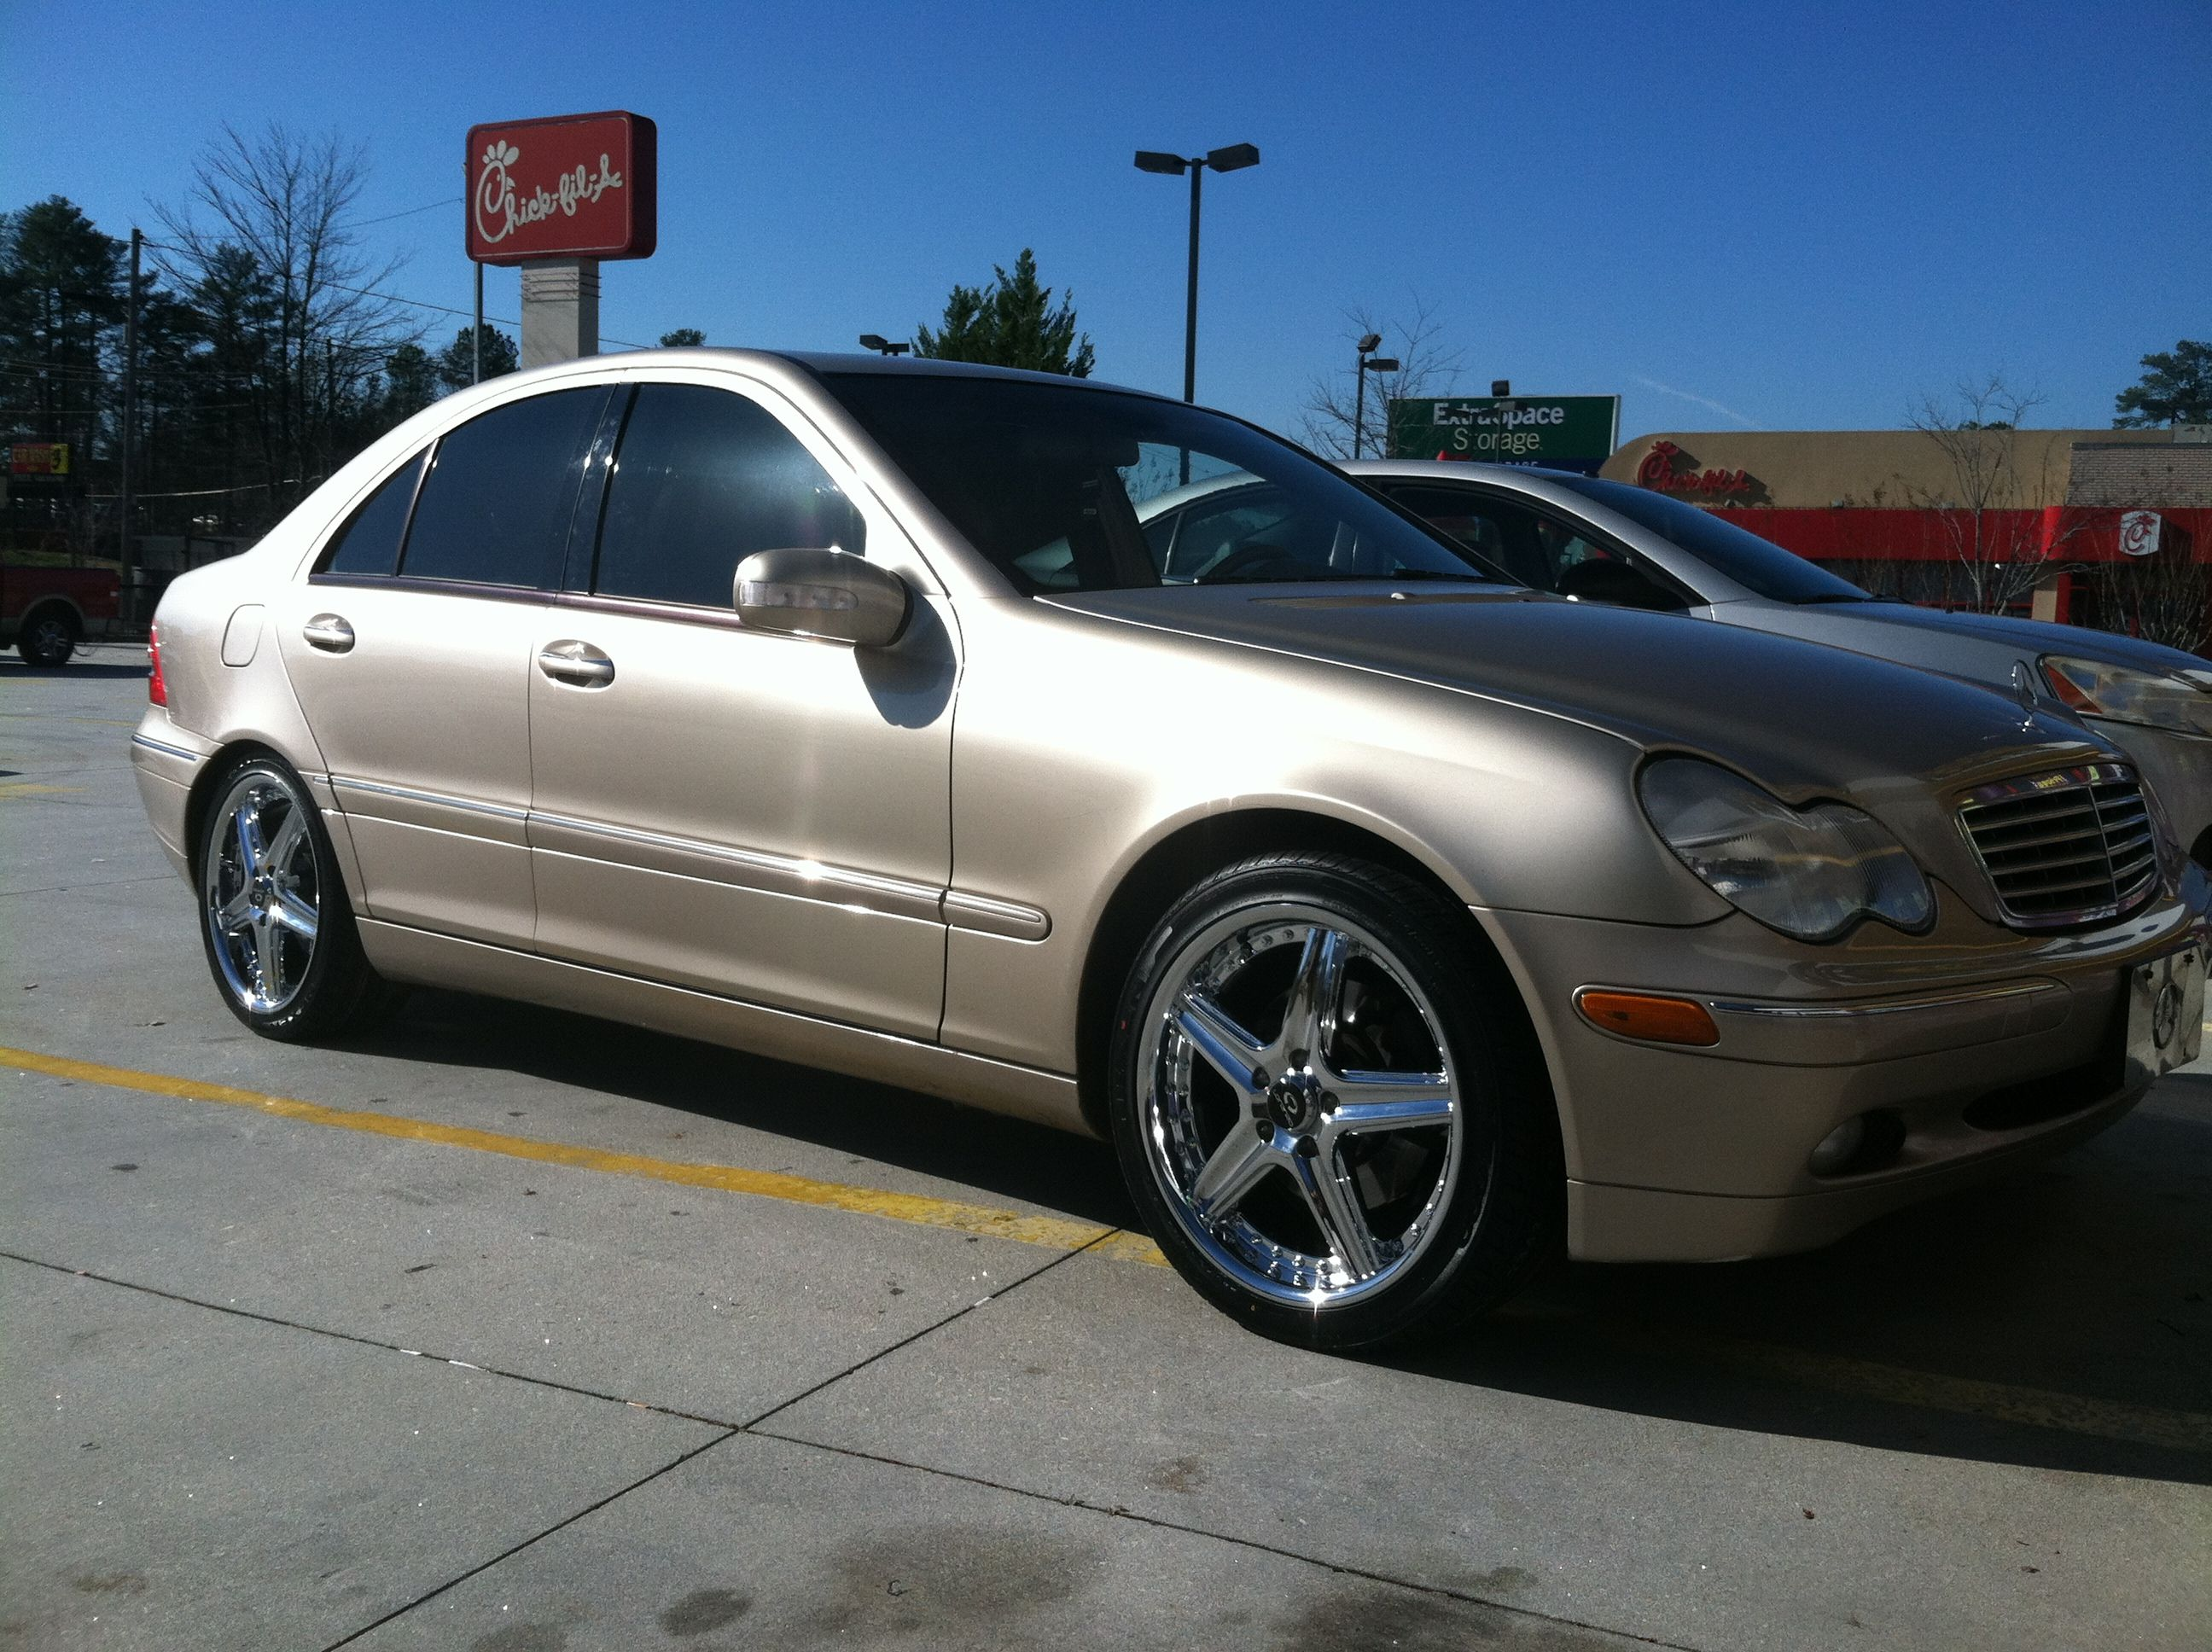 medium resolution of here s a close up of terrell hood s 2004 mercedes c240 sporting 18 lorenzo wl019 wheels photo taken at our stone mountain rimco store at 5540 memorial